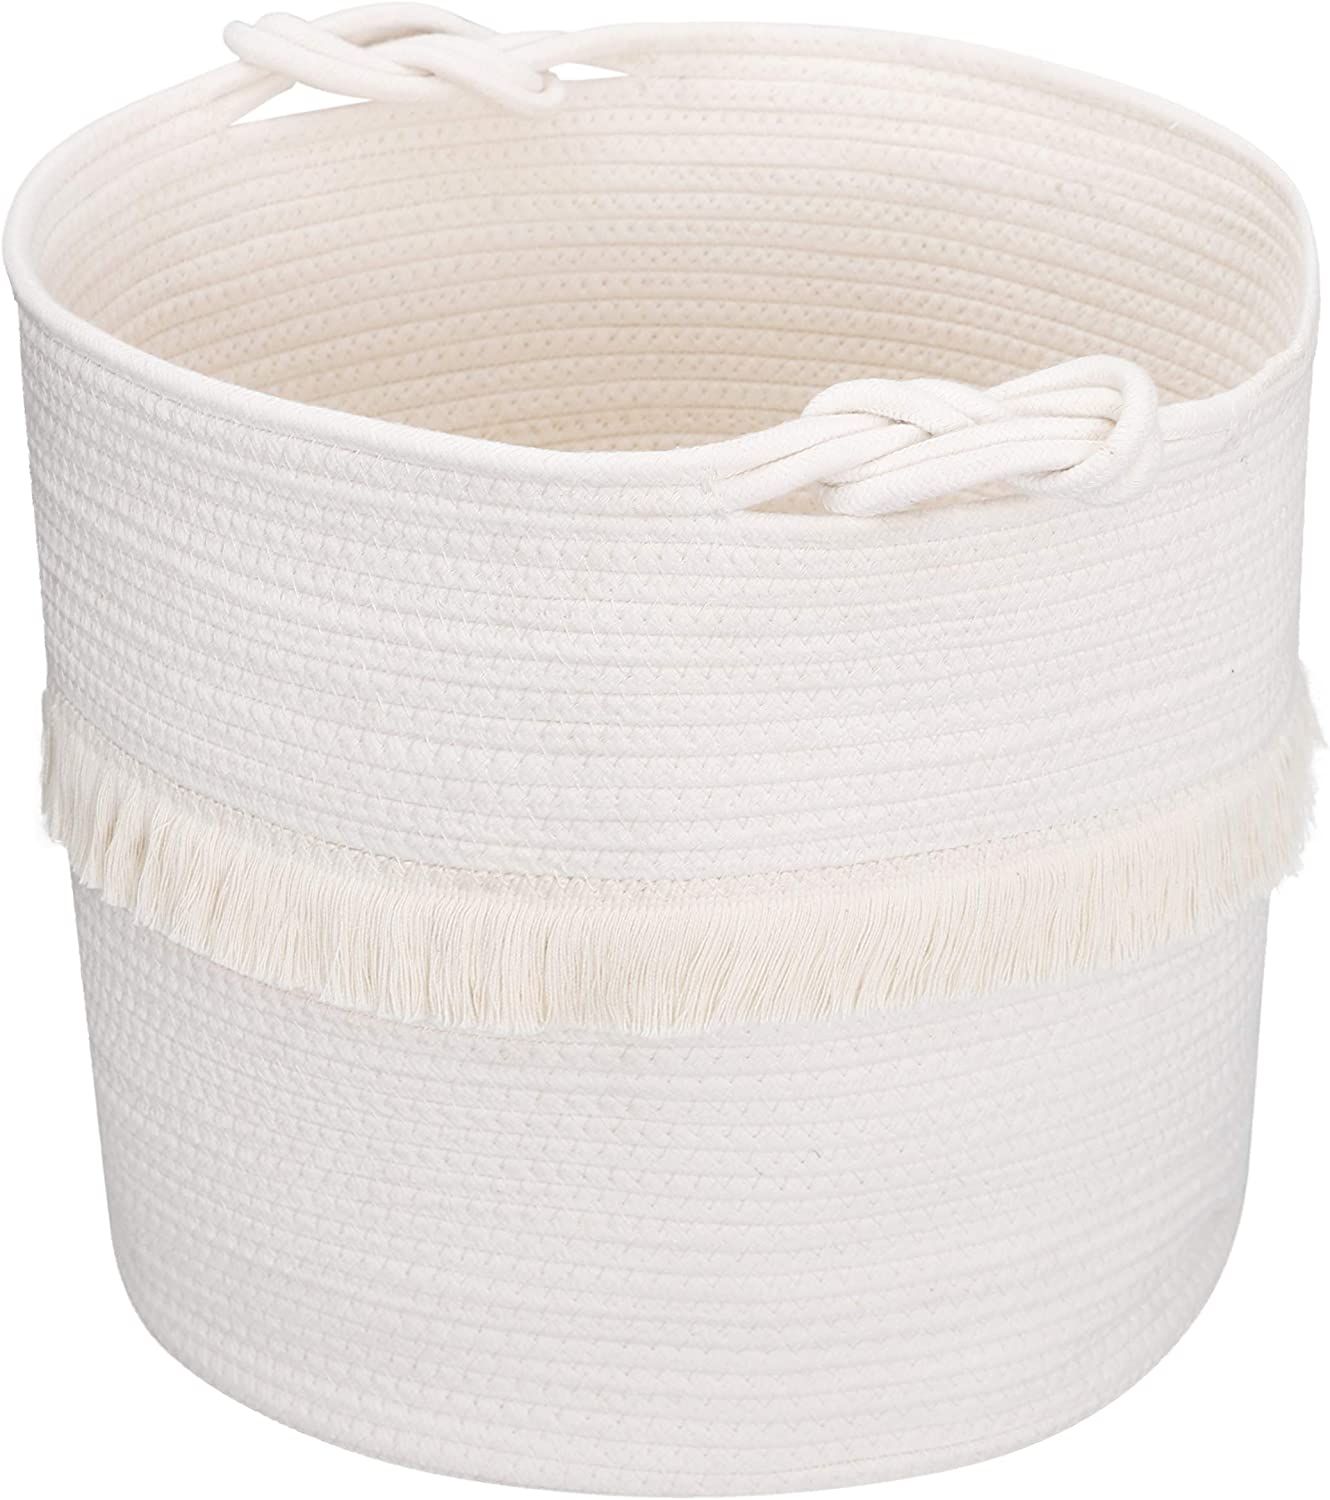 Woven Storage Baskets Cotton Rope Decorative Hamper for Nursery, Laundry and Toys, Cute Tassel Nursery Decor Home Storage Container